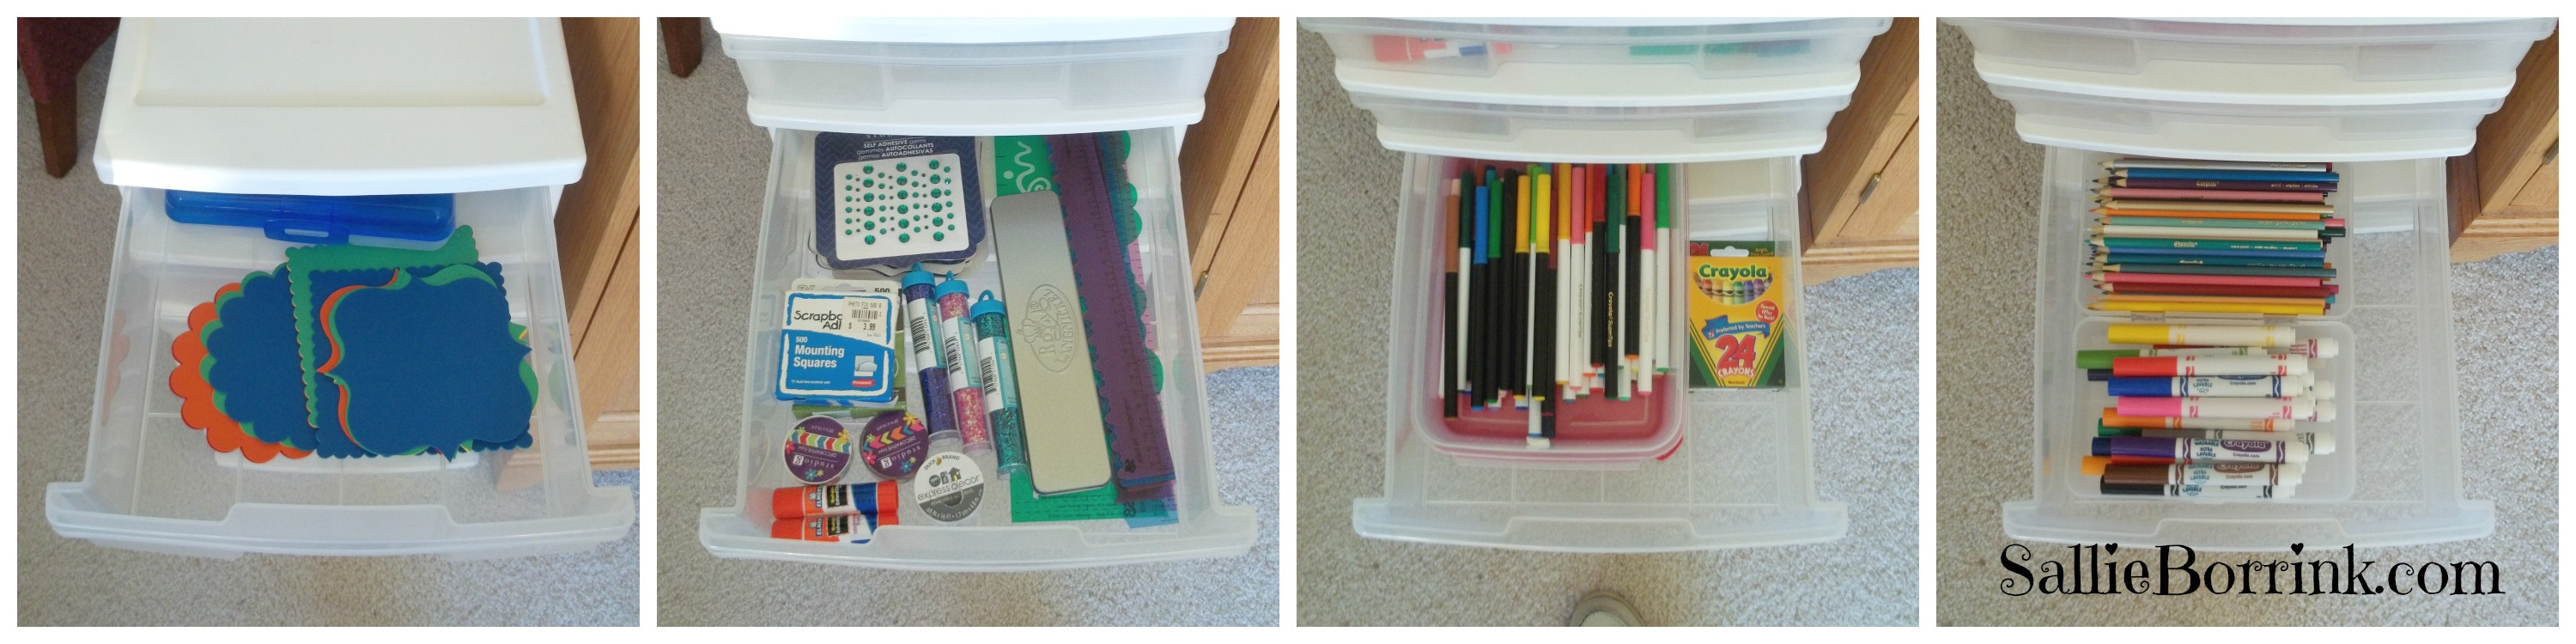 Notebooking Supplies in Drawers